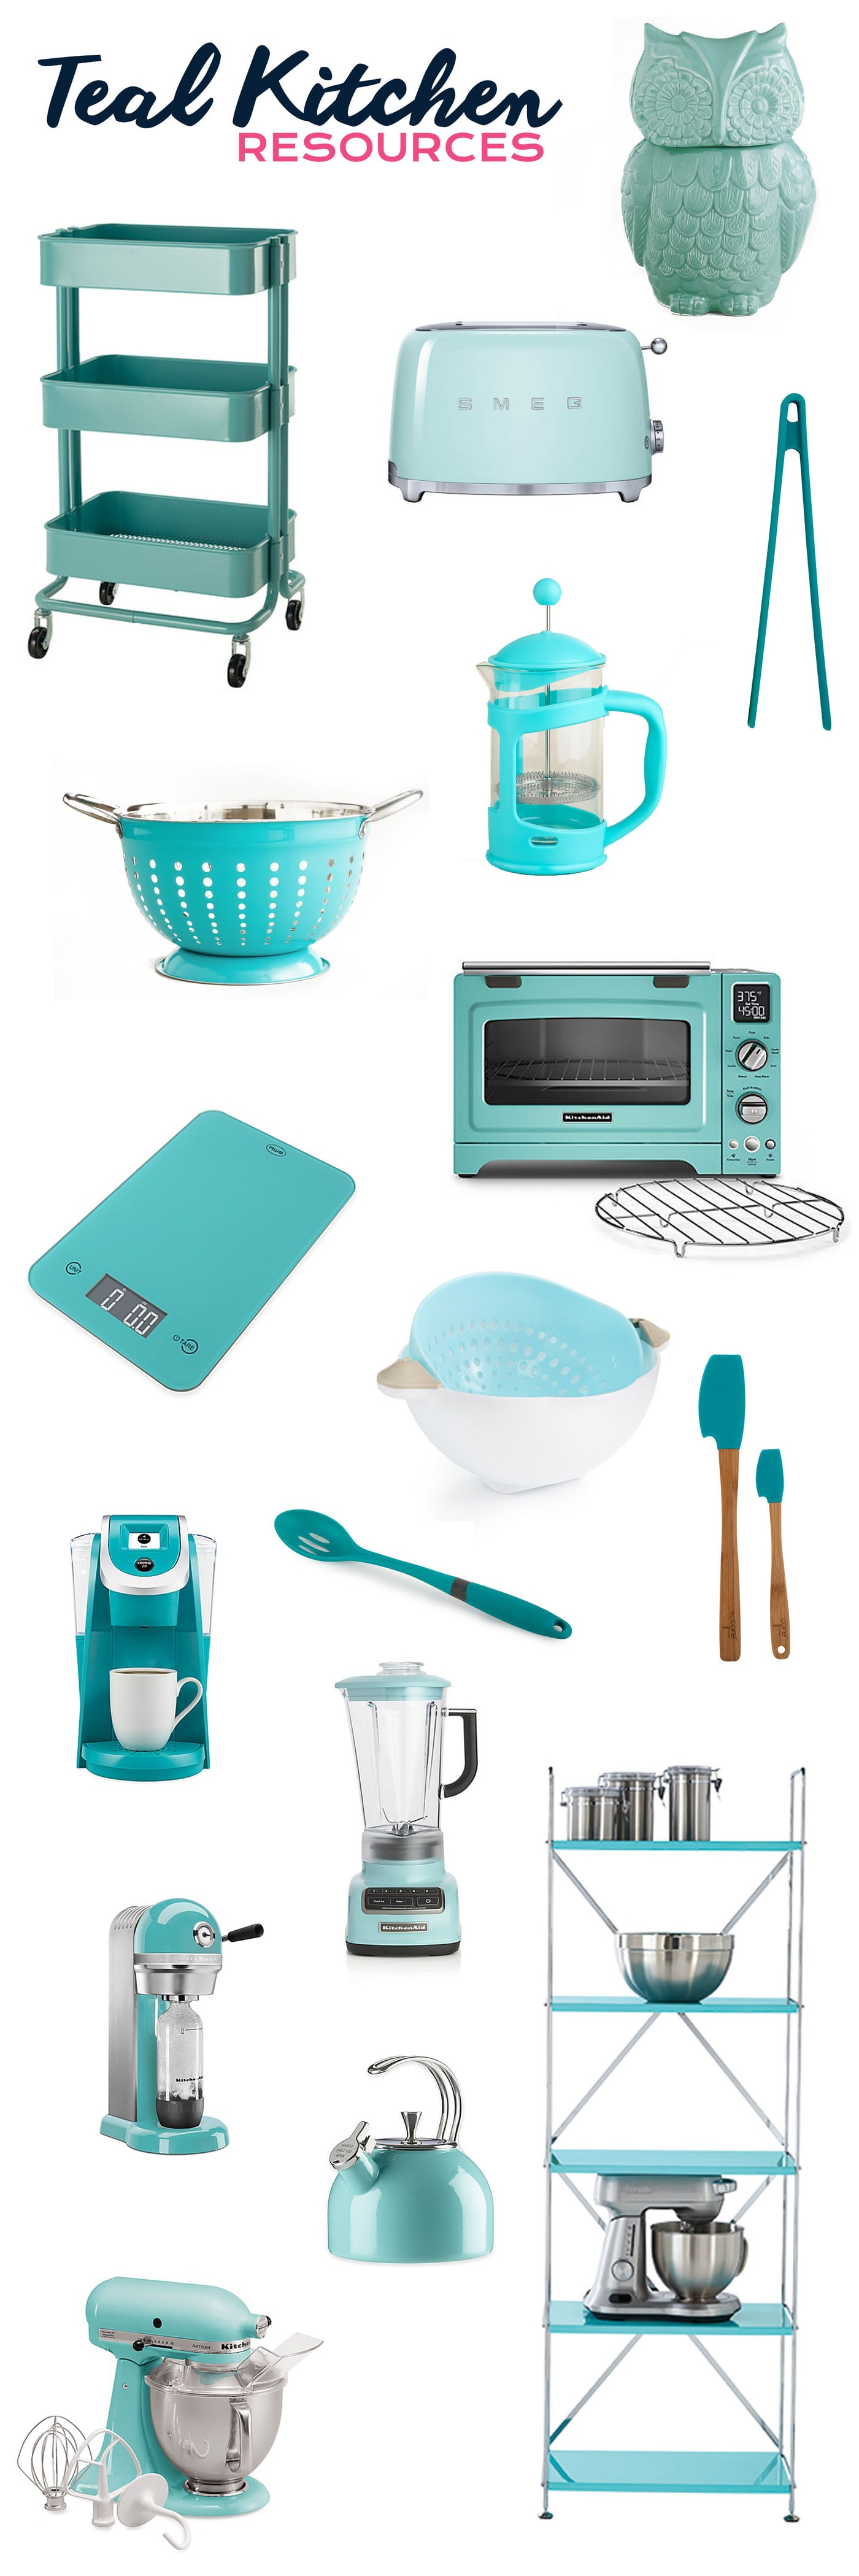 My Favorite Resources for Teal Kitchens • Choosing Figs